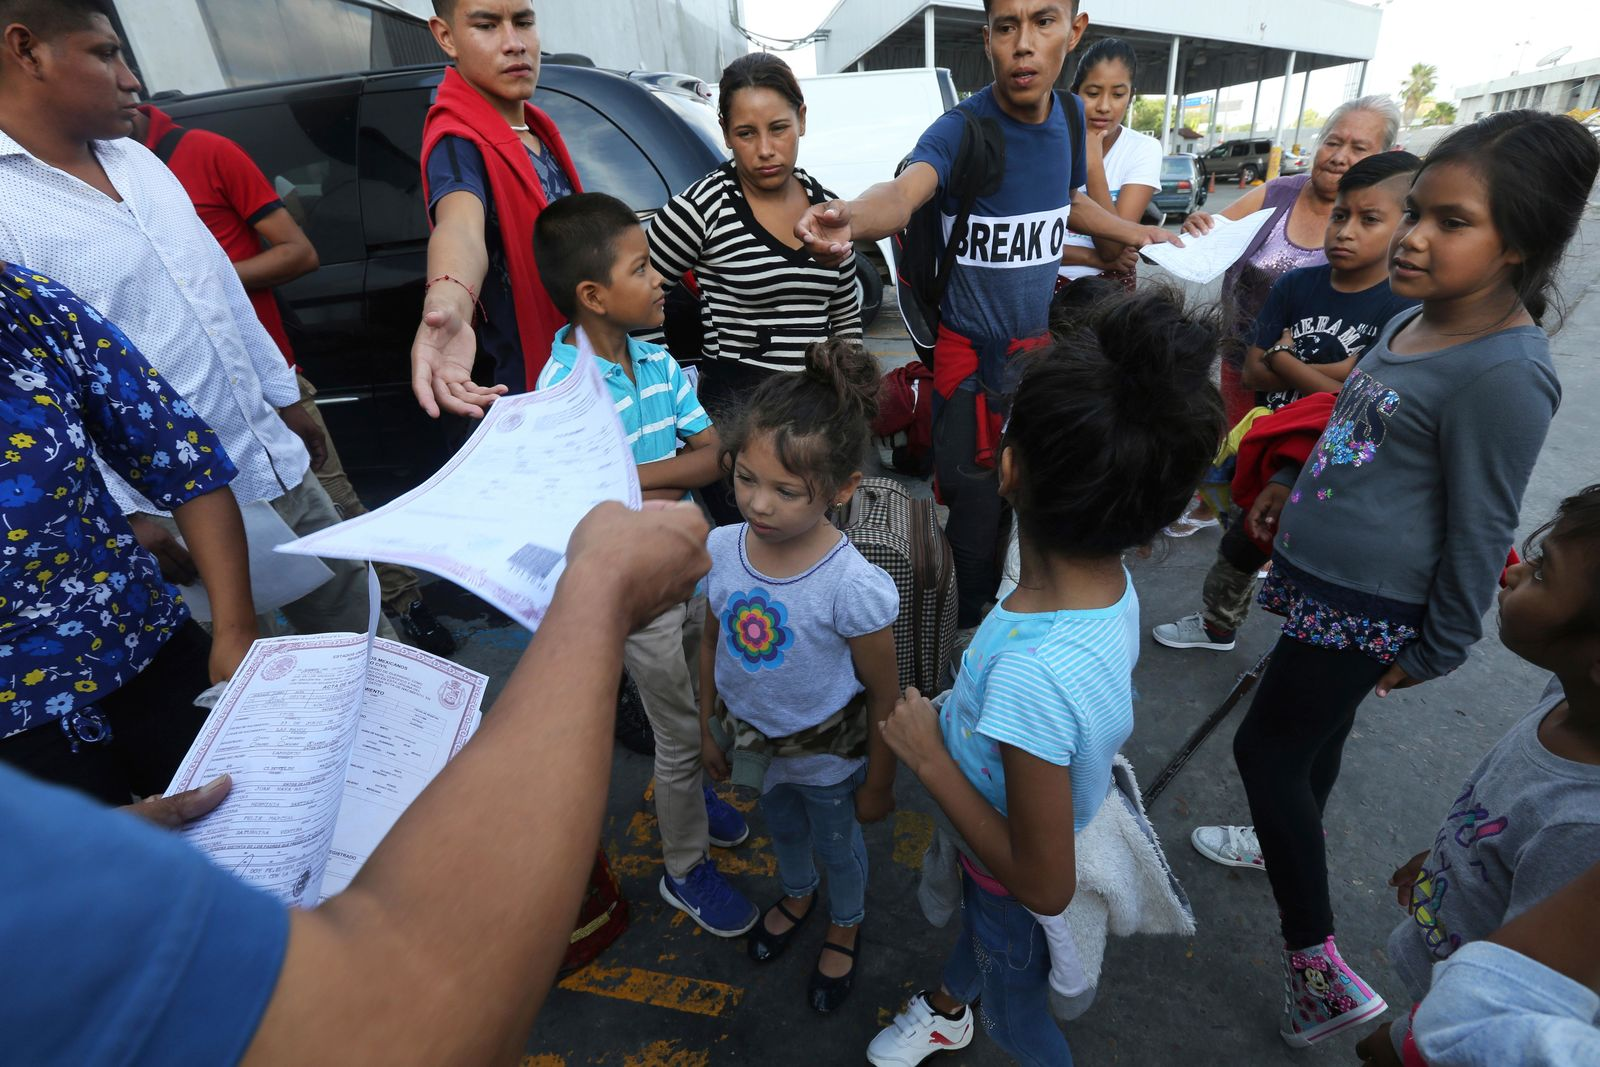 Pastor Aaron Mendes hands out documents to Migrants before they enter the immigration office on the Mexican side of the border, before they are escorted across to apply for asylum on the United States side, in Nuevo Laredo, Mexico.{ } (AP Photo/Marco Ugarte)